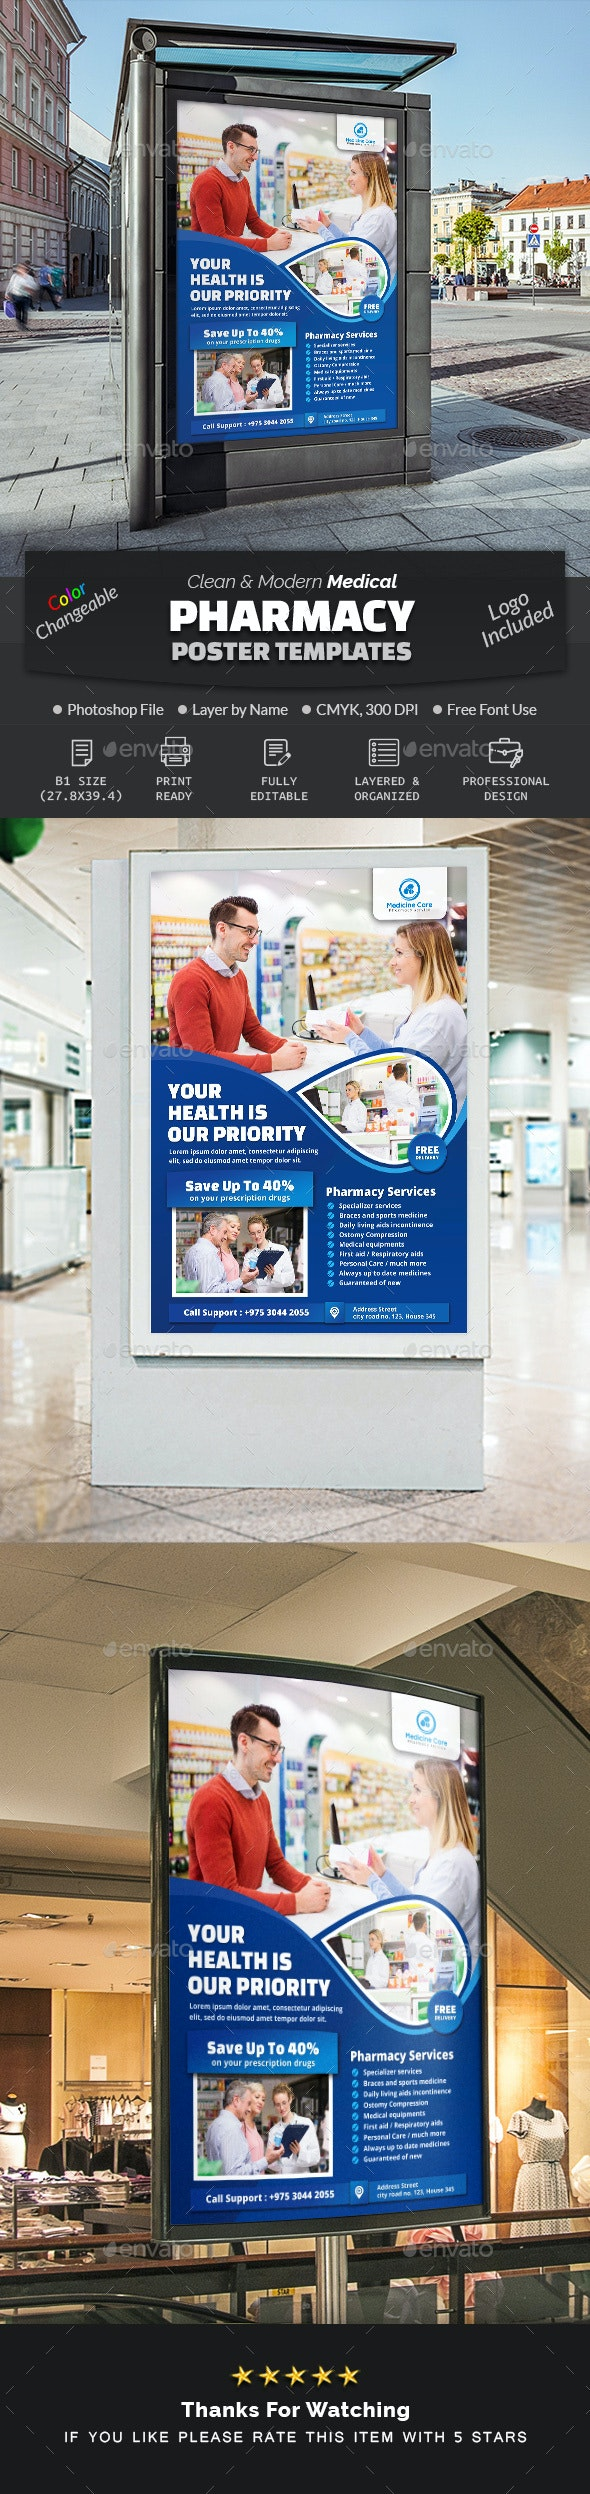 Pharmacy Poster Template - Signage Print Templates